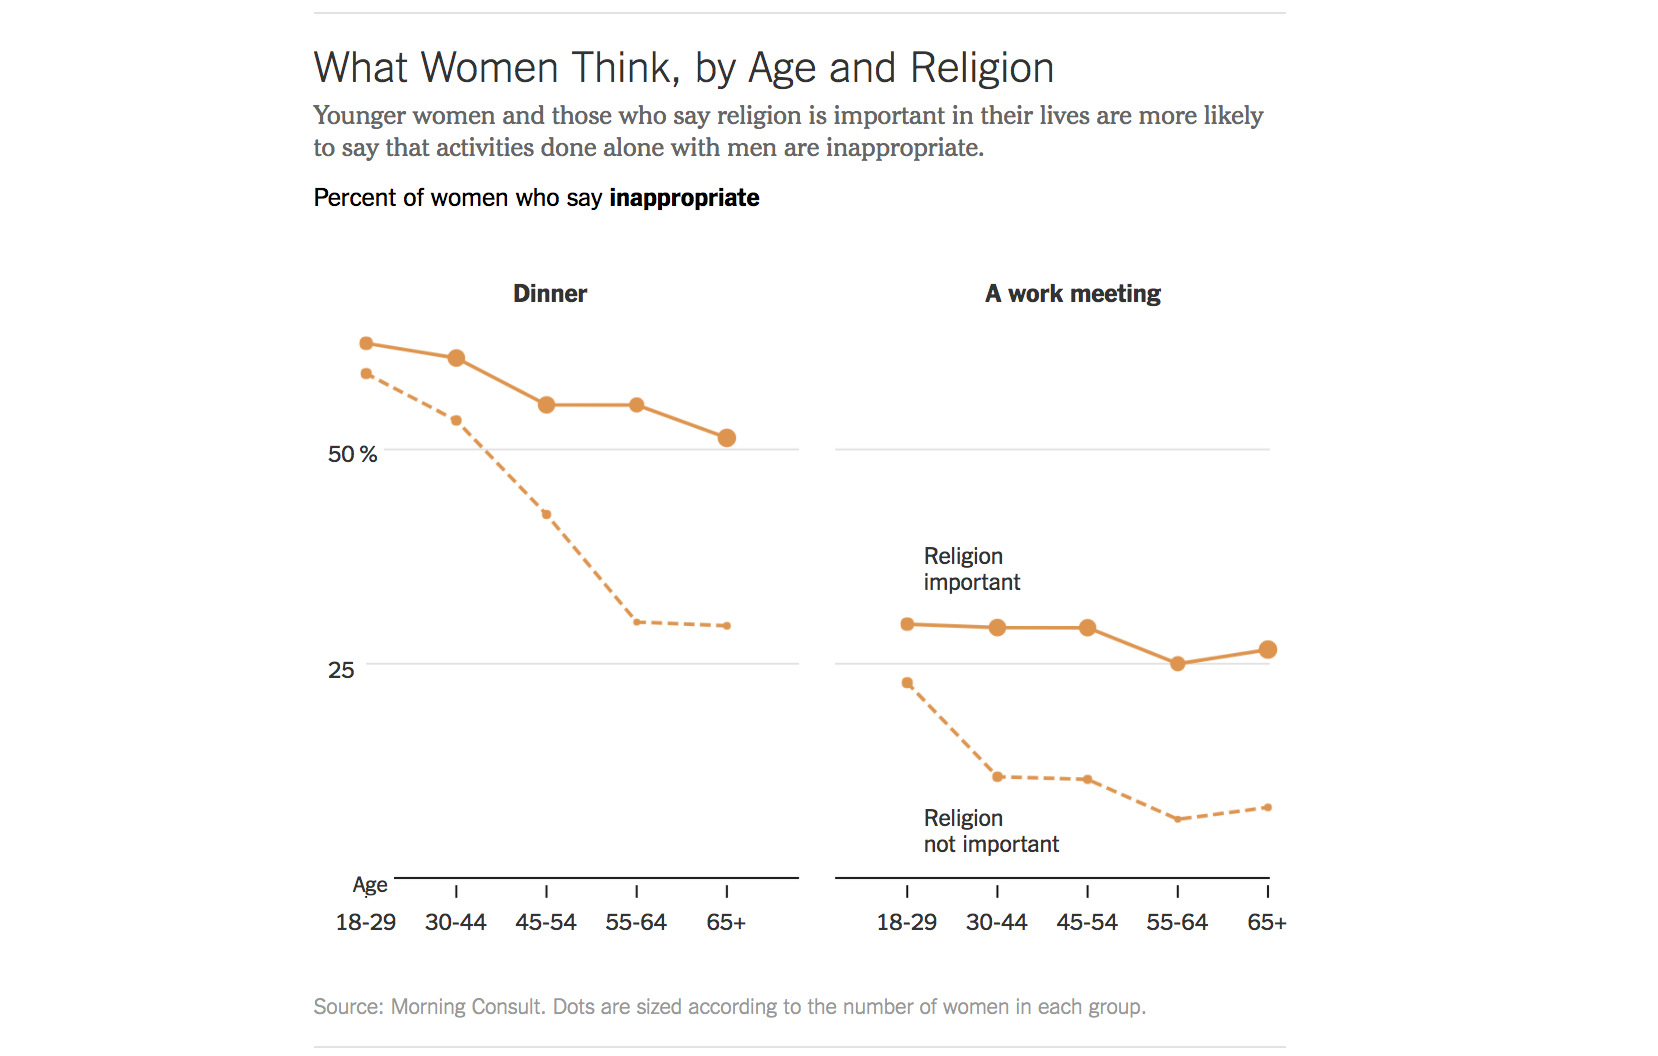 WomenAgeReligionMeetAlone